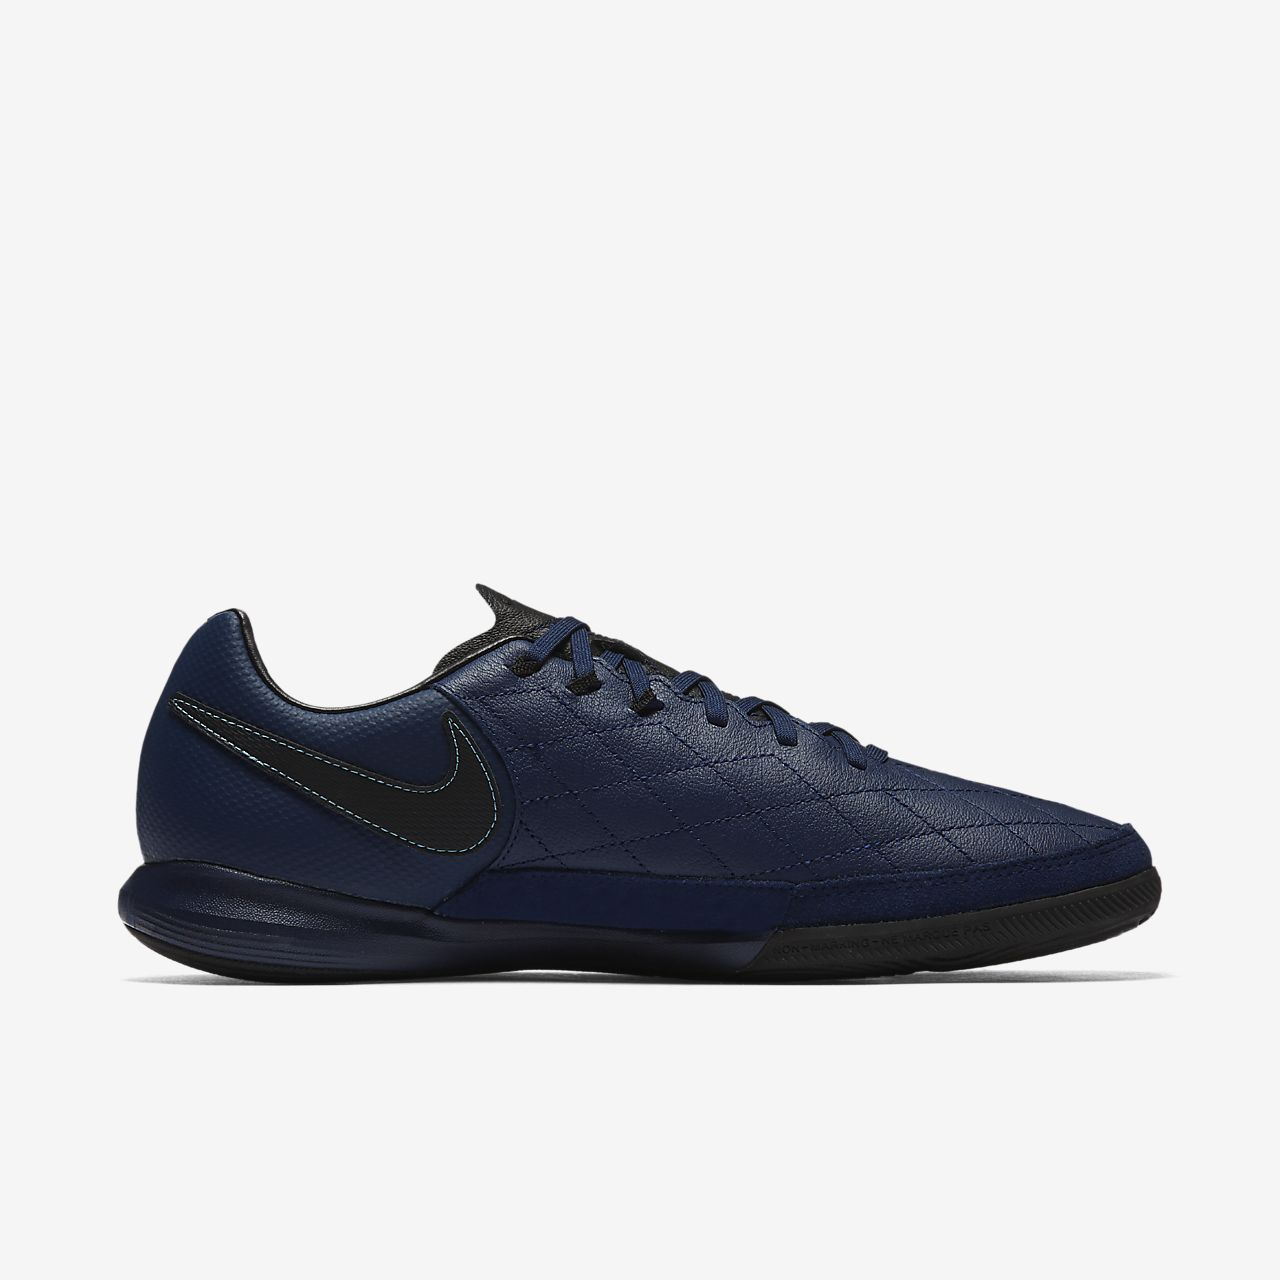 a61b68f4ac7 ... nike tiempox finale 10r ic indoor court football shoe